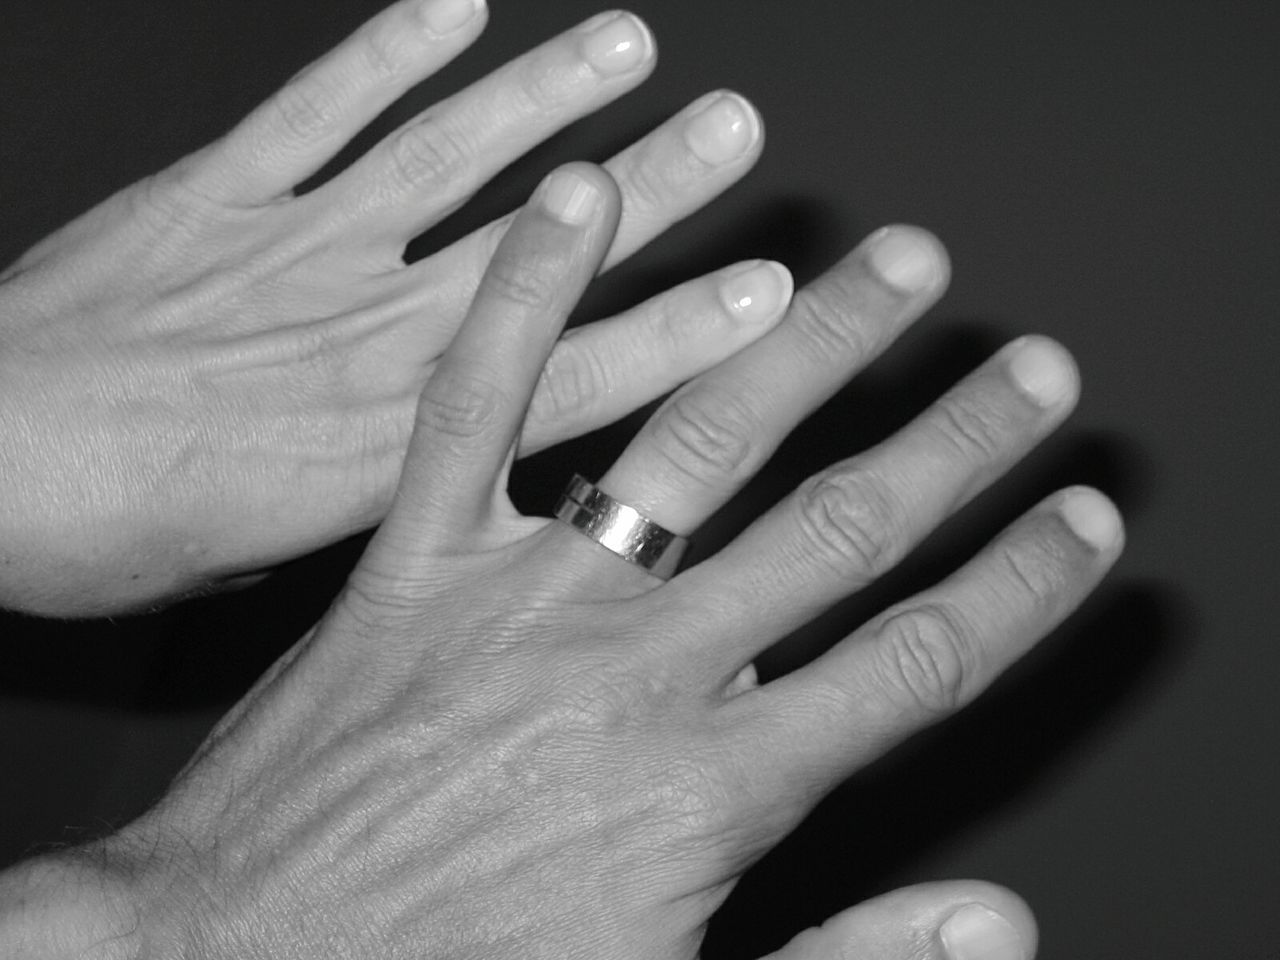 Hands She And He She And Me She And Me ❤️ HJB Ring On Finger Love Black And White Fingers Fingerring Ring